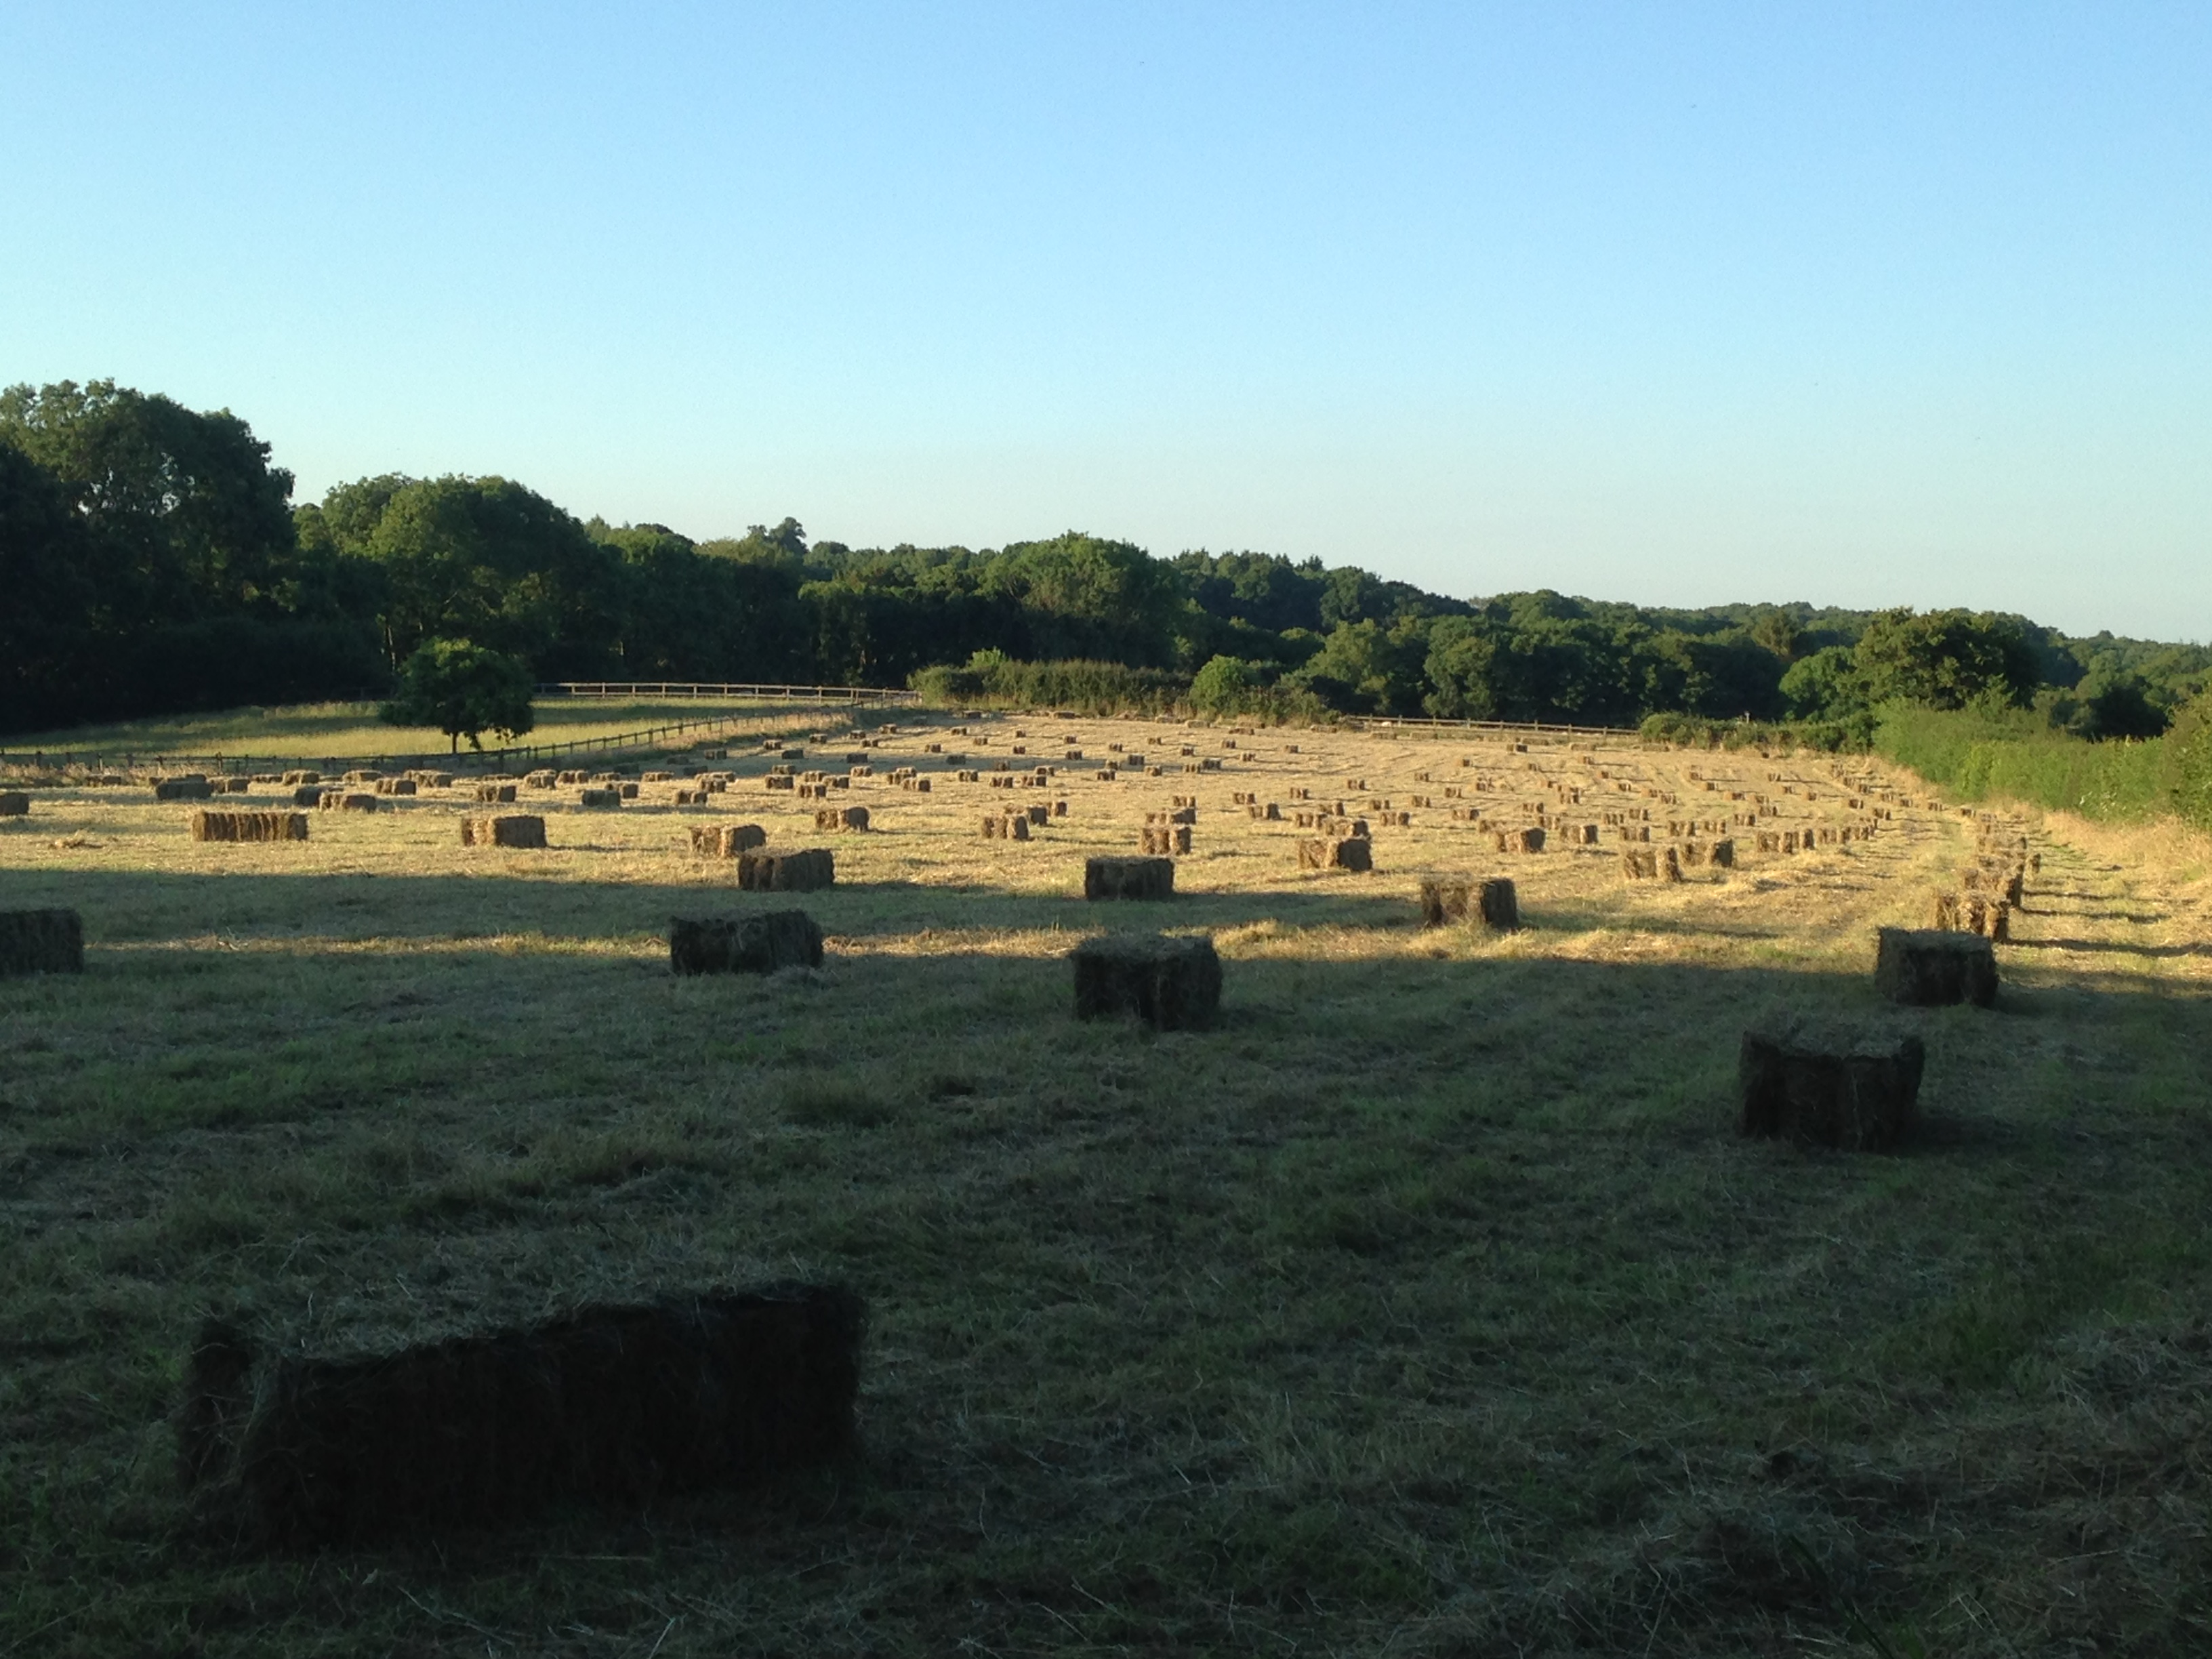 The hay bales are neatly laid out ready for collection.